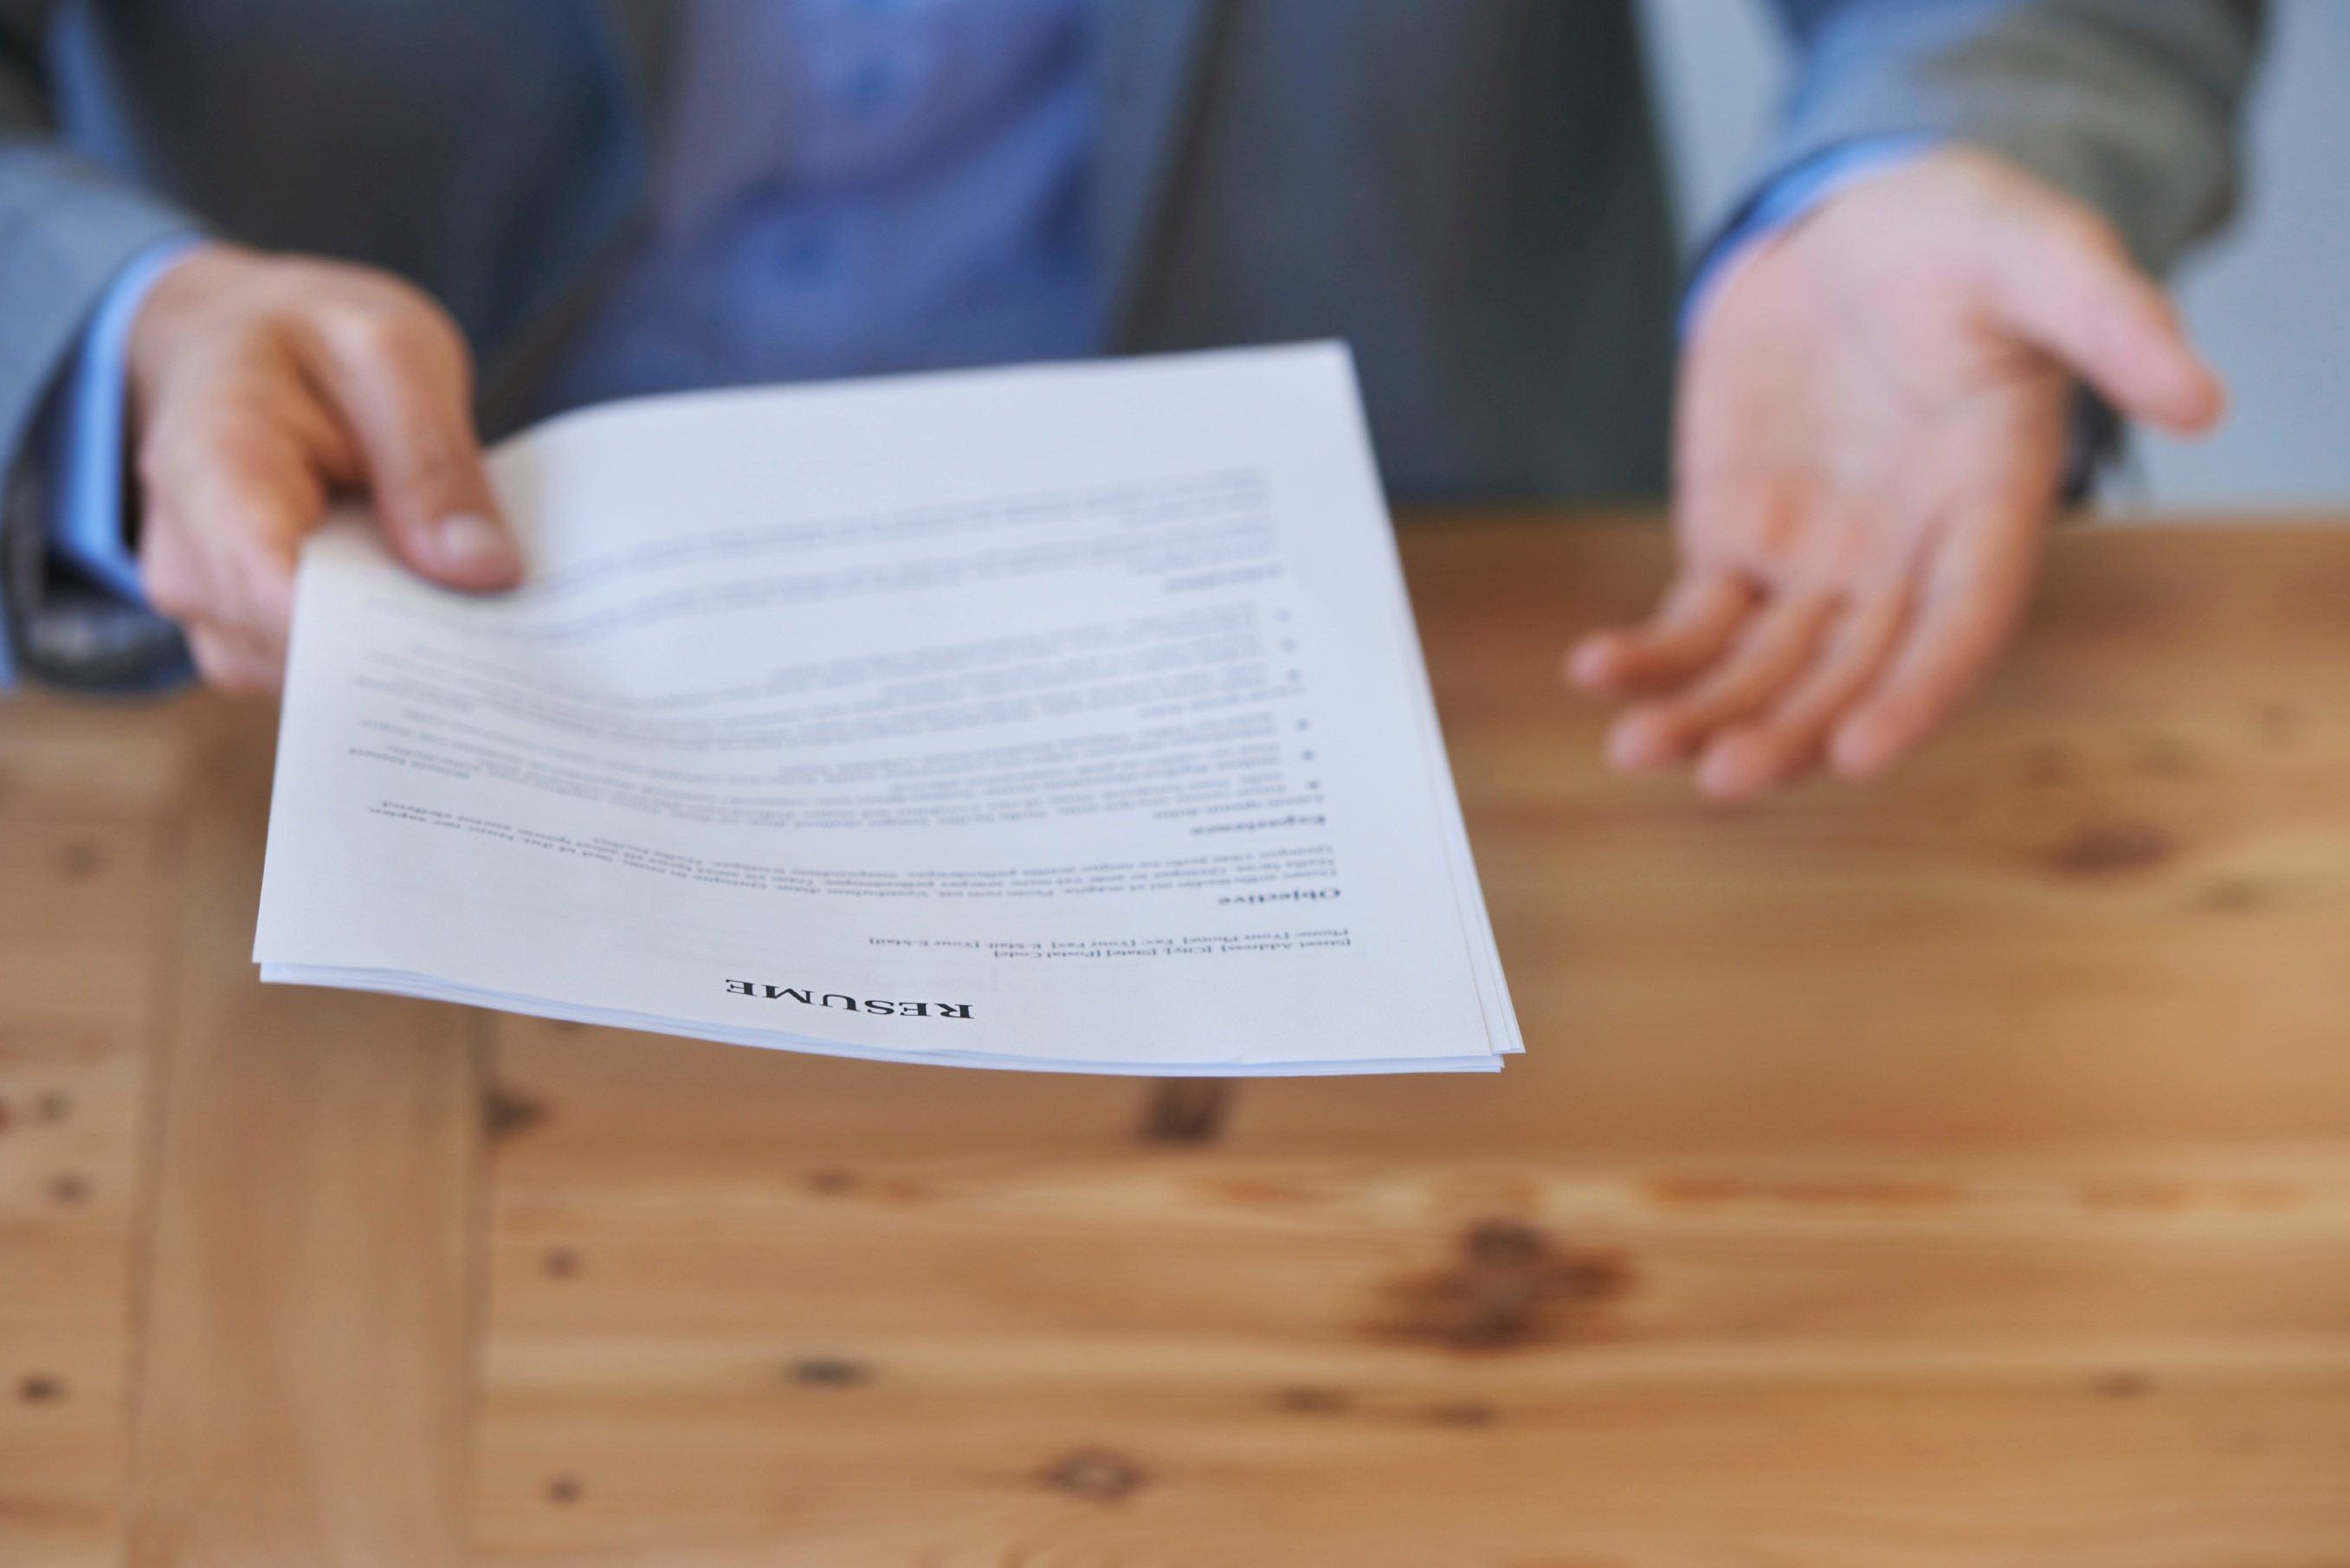 6 Tips To Build Your Best Workplace Management Resume